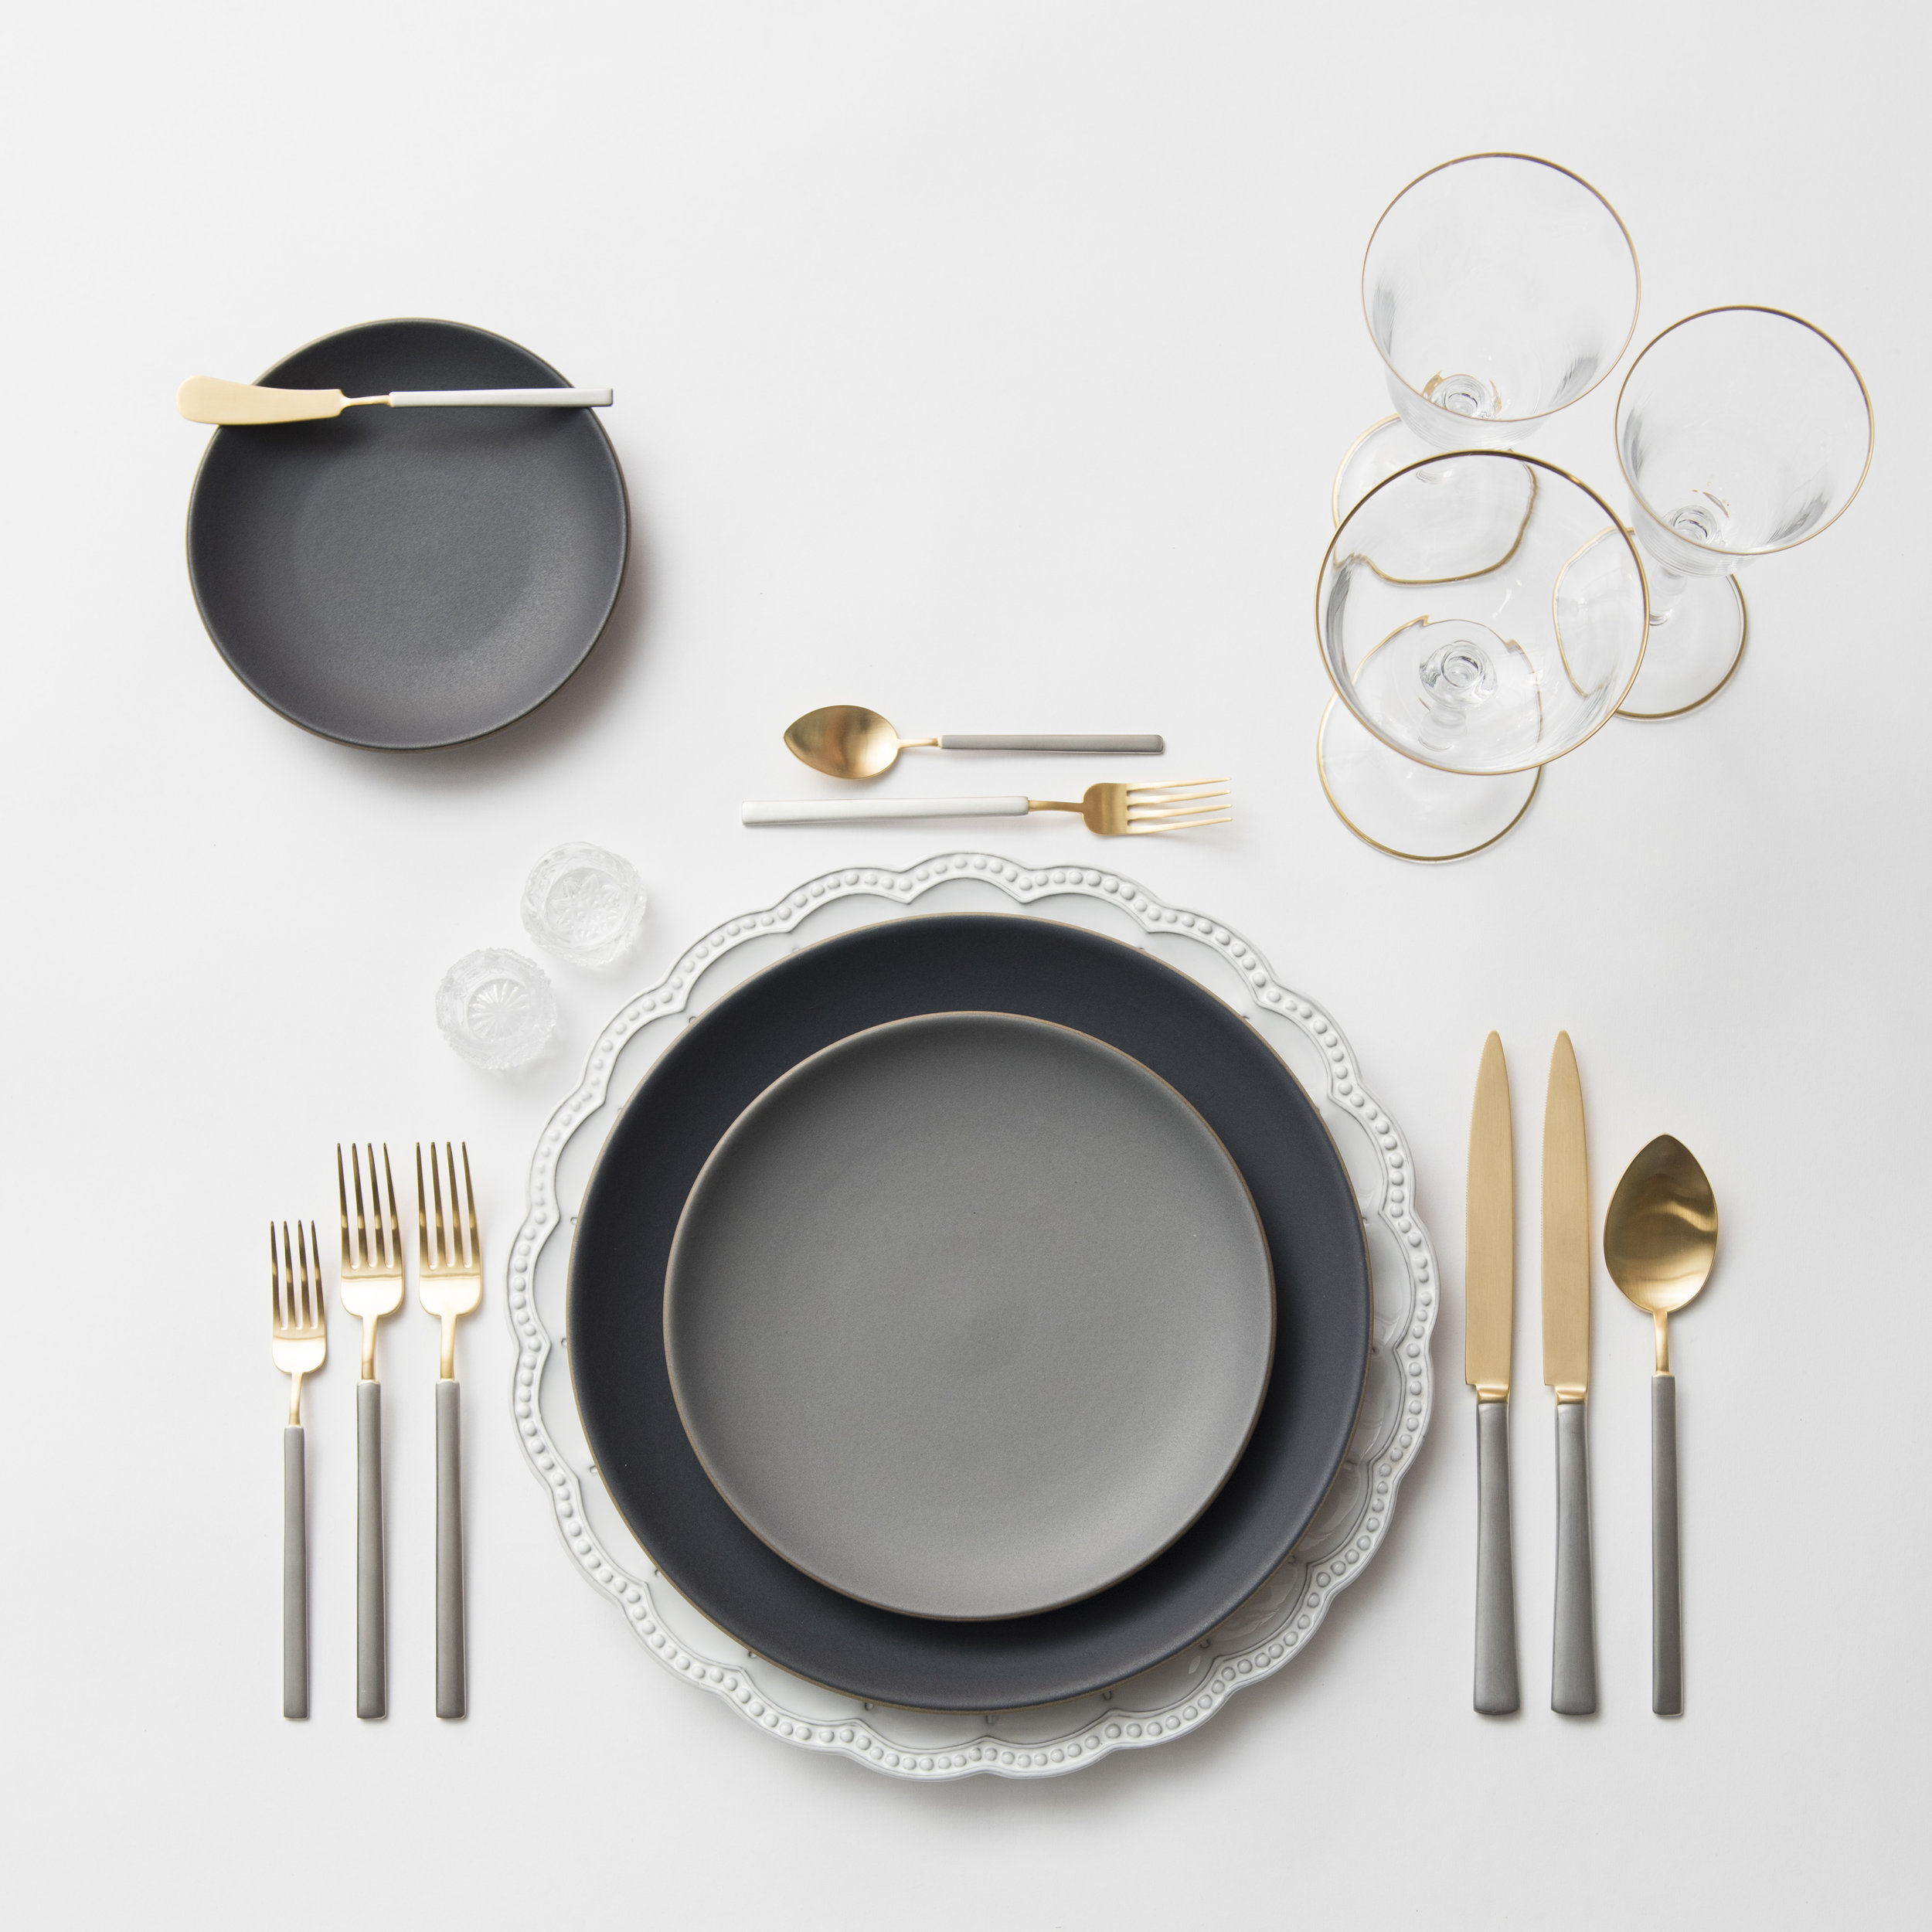 RENT: Signature Collection Chargers + Heath Ceramics in Indigo/Slate + Axel Flatware in Matte 24k Gold/Silver + Chloe 24k Gold Rimmed Stemware + Antique Crystal Salt Cellars  SHOP:Chloe 24k Gold Rimmed Stemware